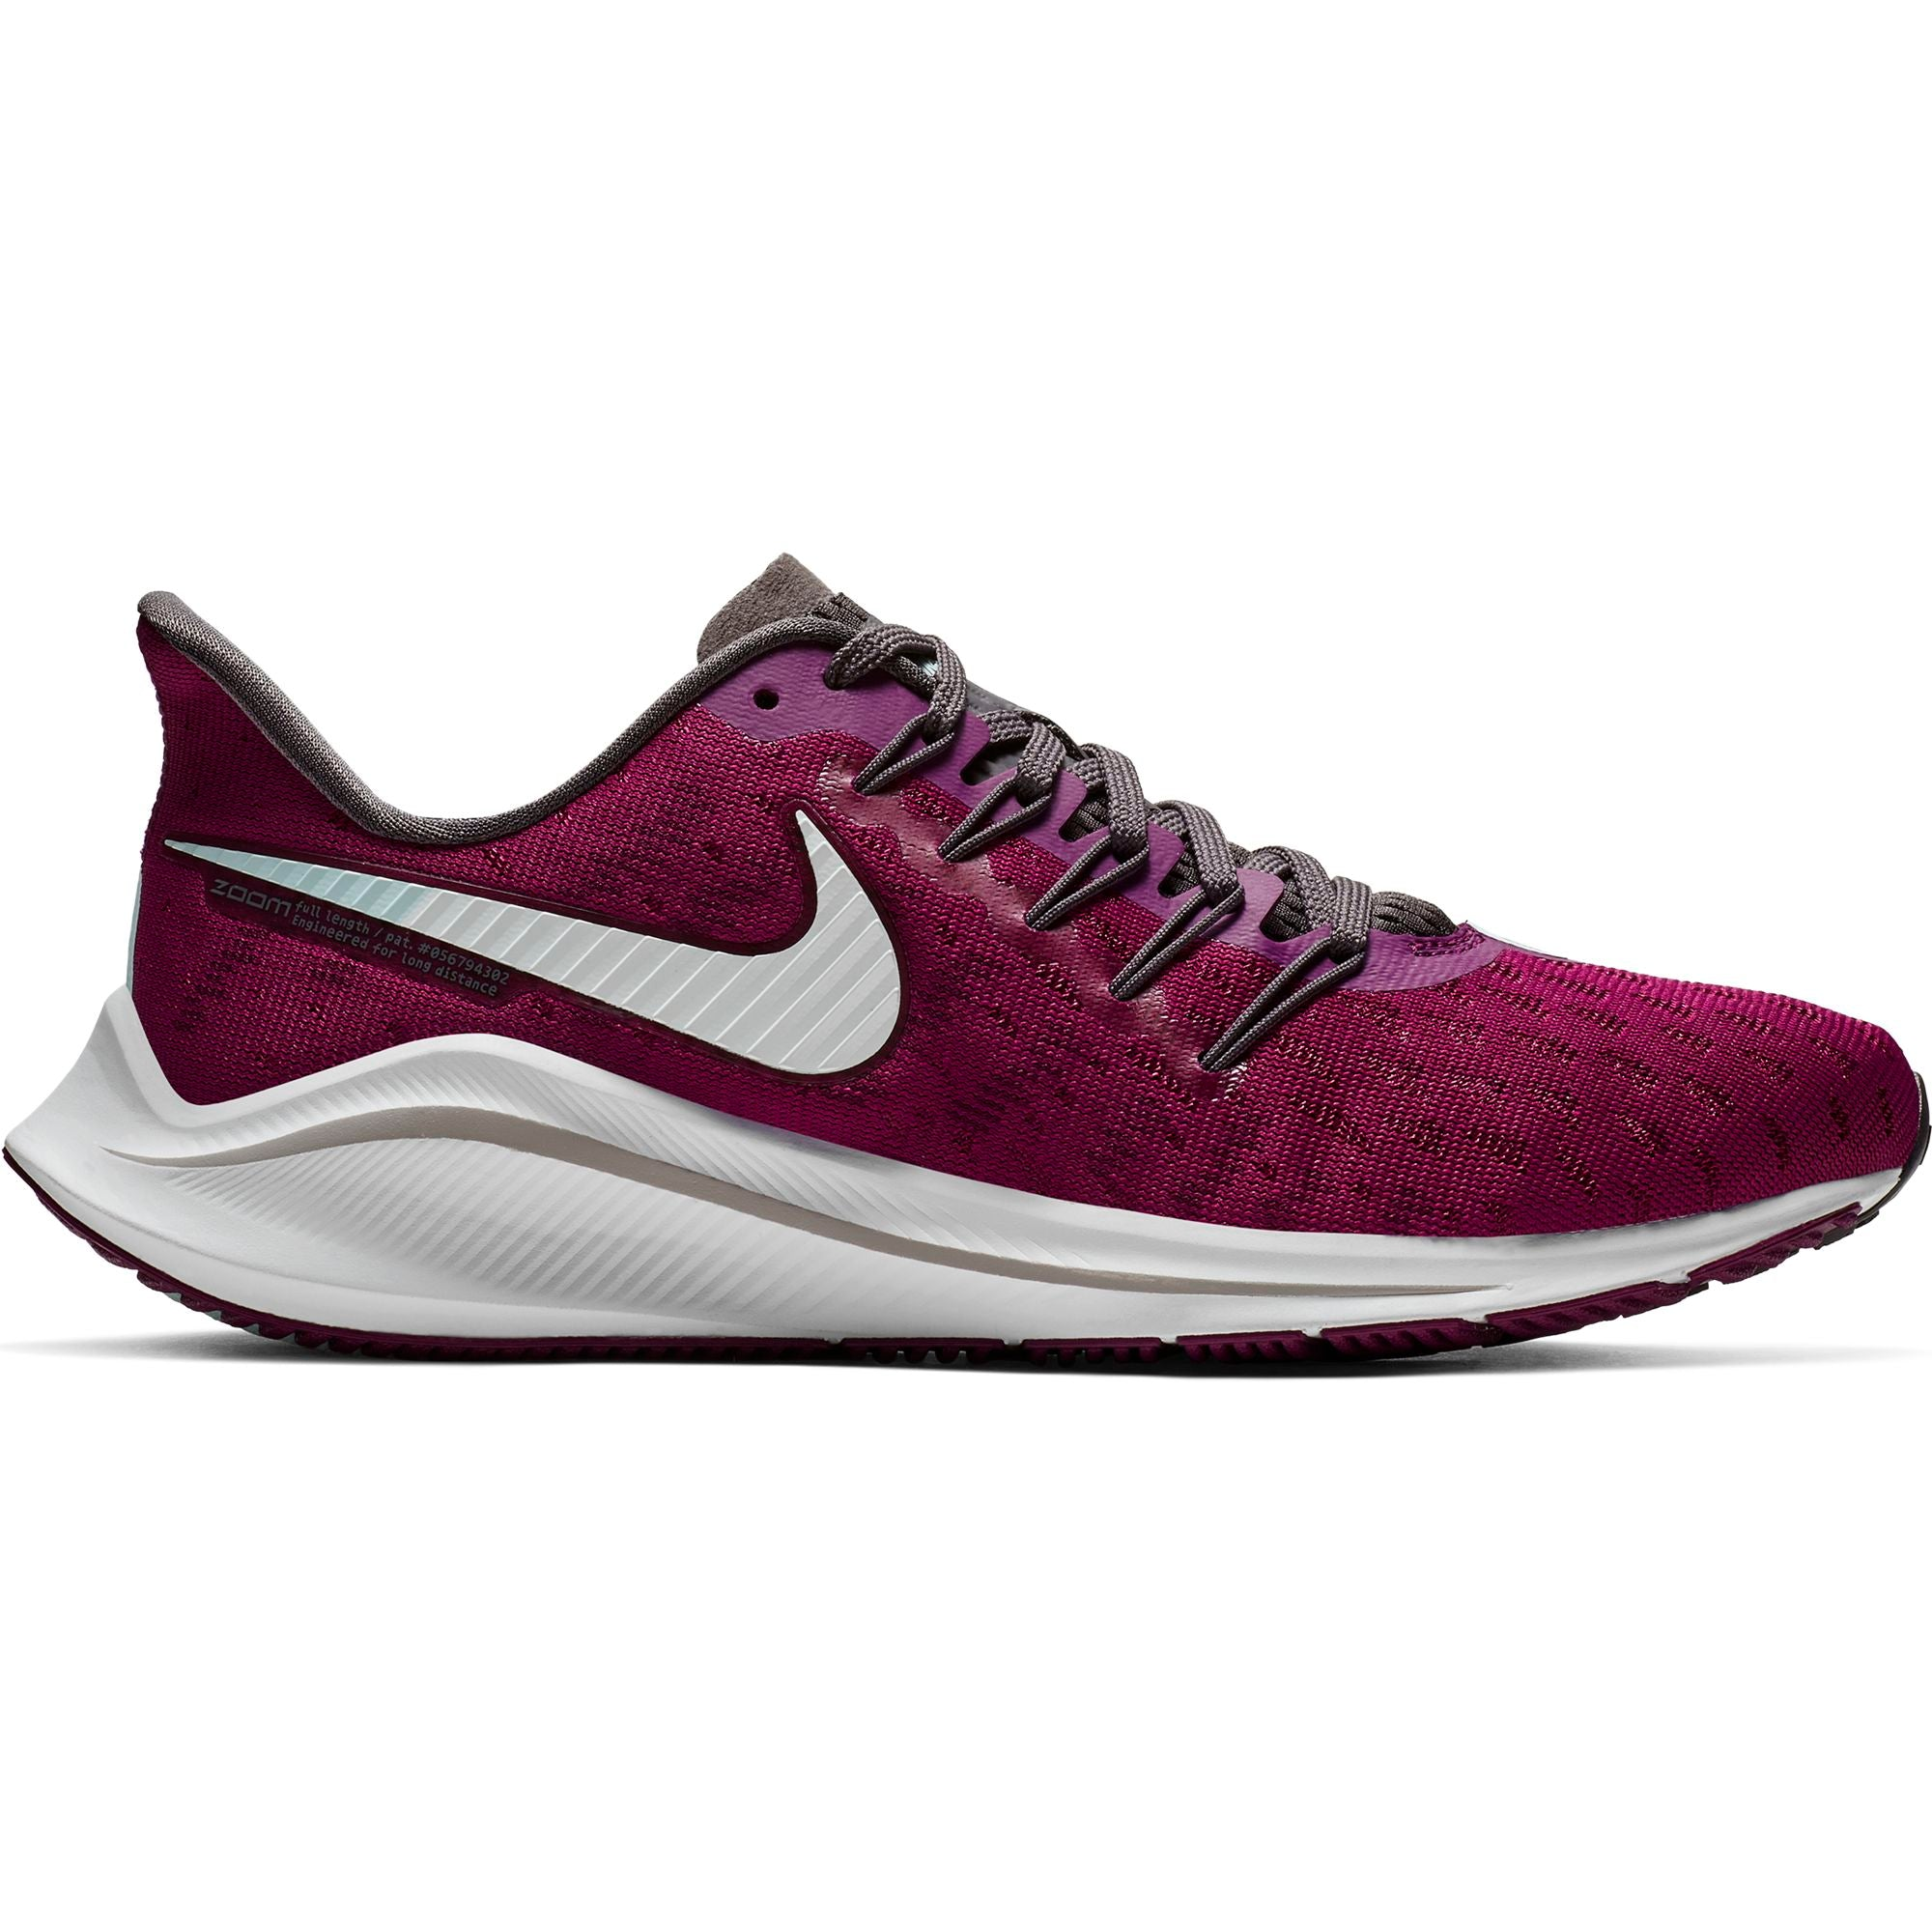 Women s Air Zoom Vomero 14 Running Shoe - True Berry White Thunder Gre –  Gazelle Sports 7068a050d